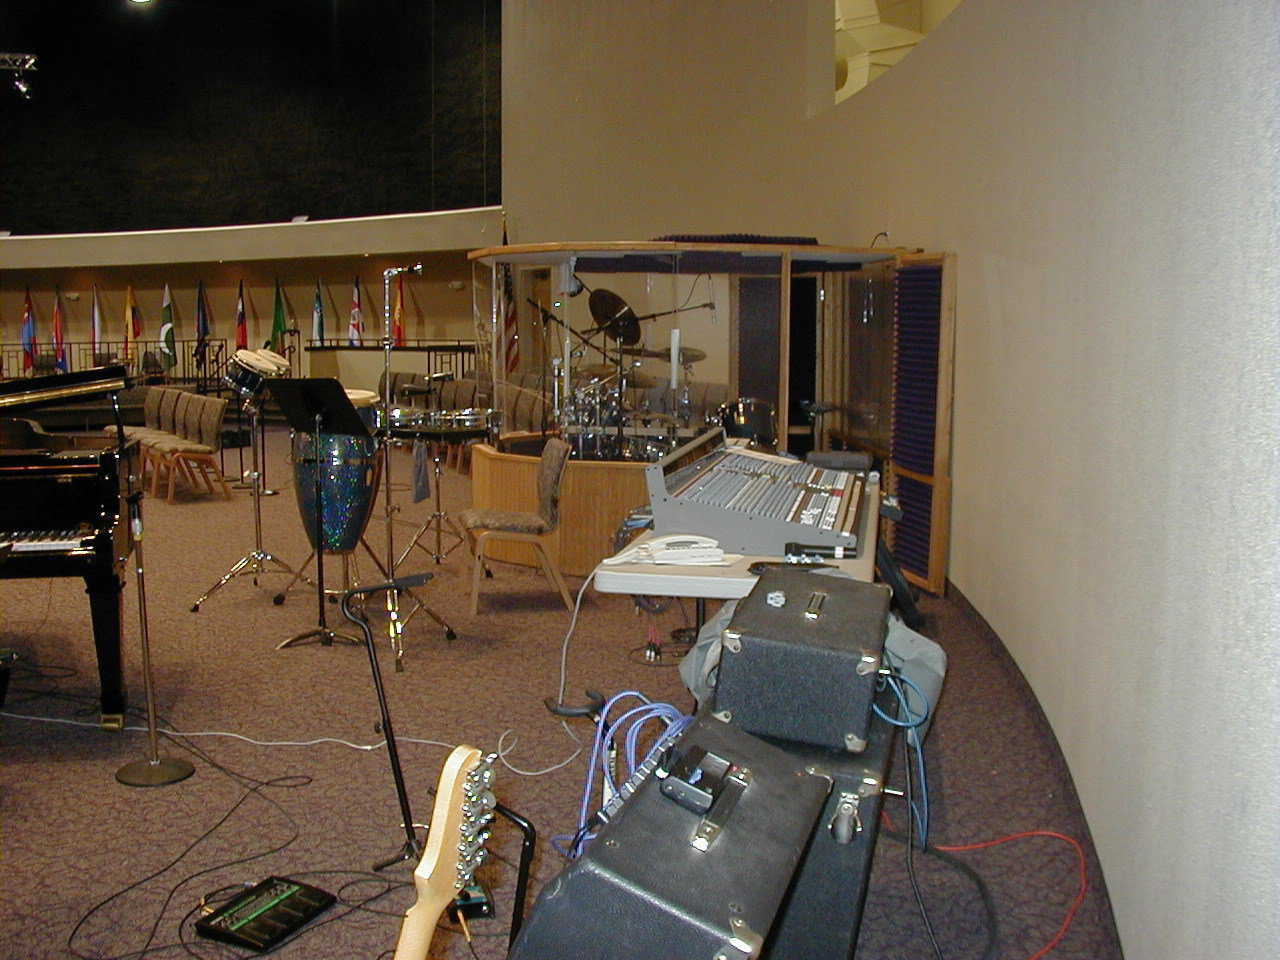 Pictured here is a sound stage set up for an audience, but a similar setup would be perfect for a recording studio.